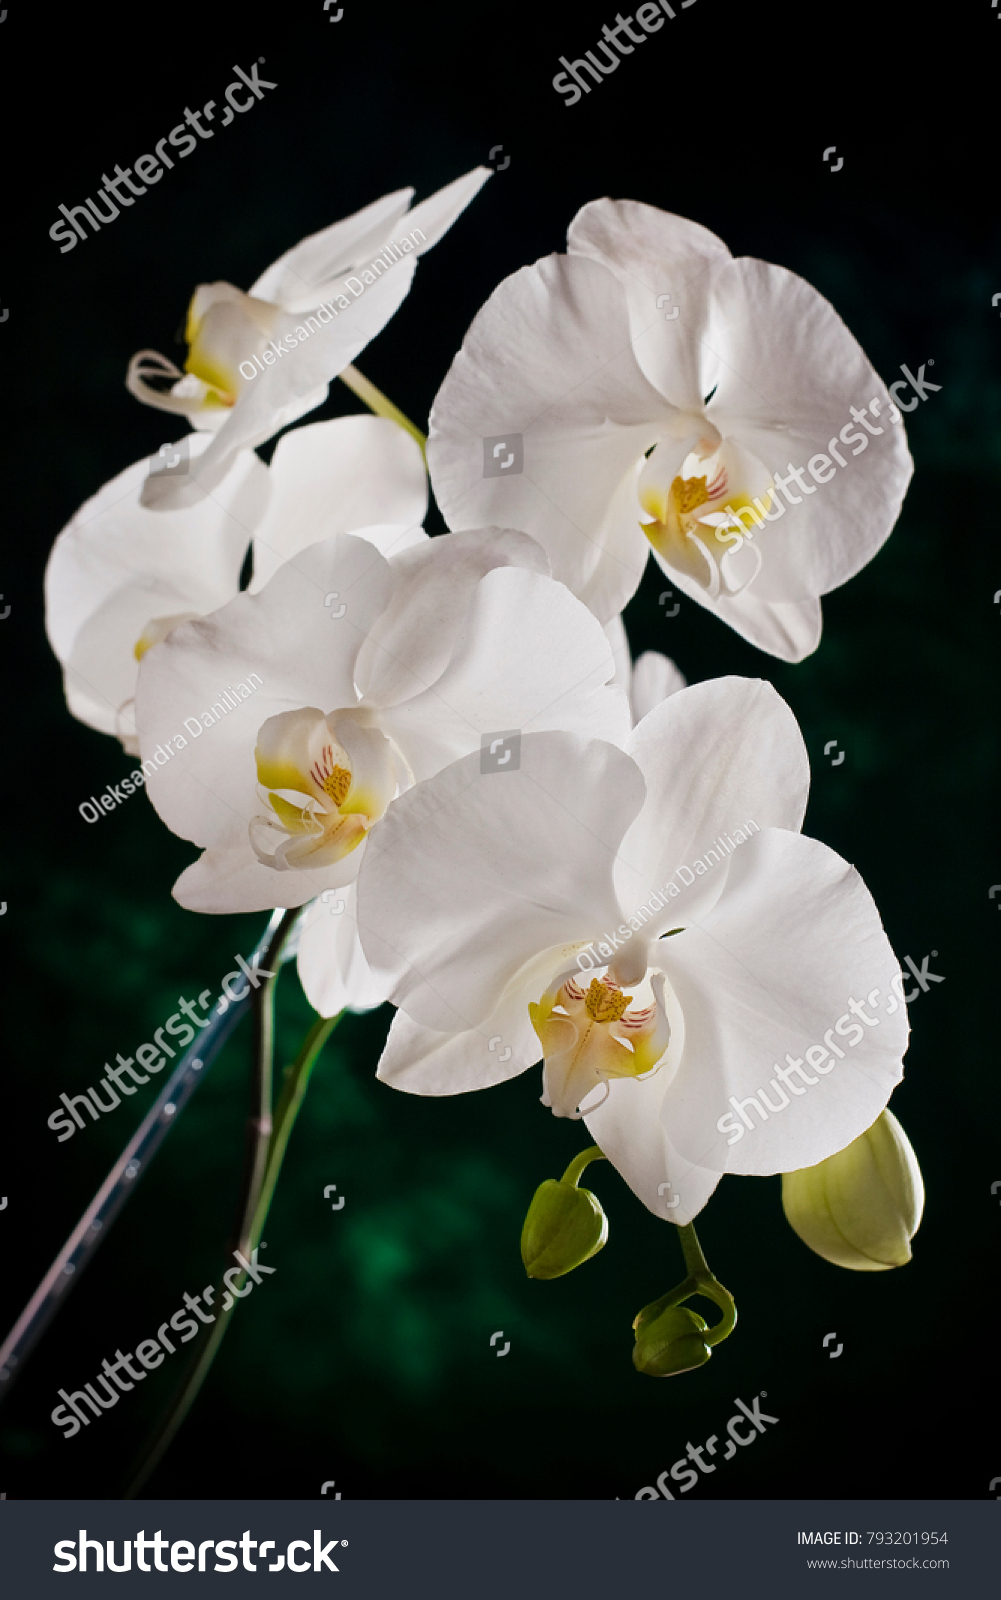 White Orchid Flowers At Green Branch With Blossom And Leaf Buds